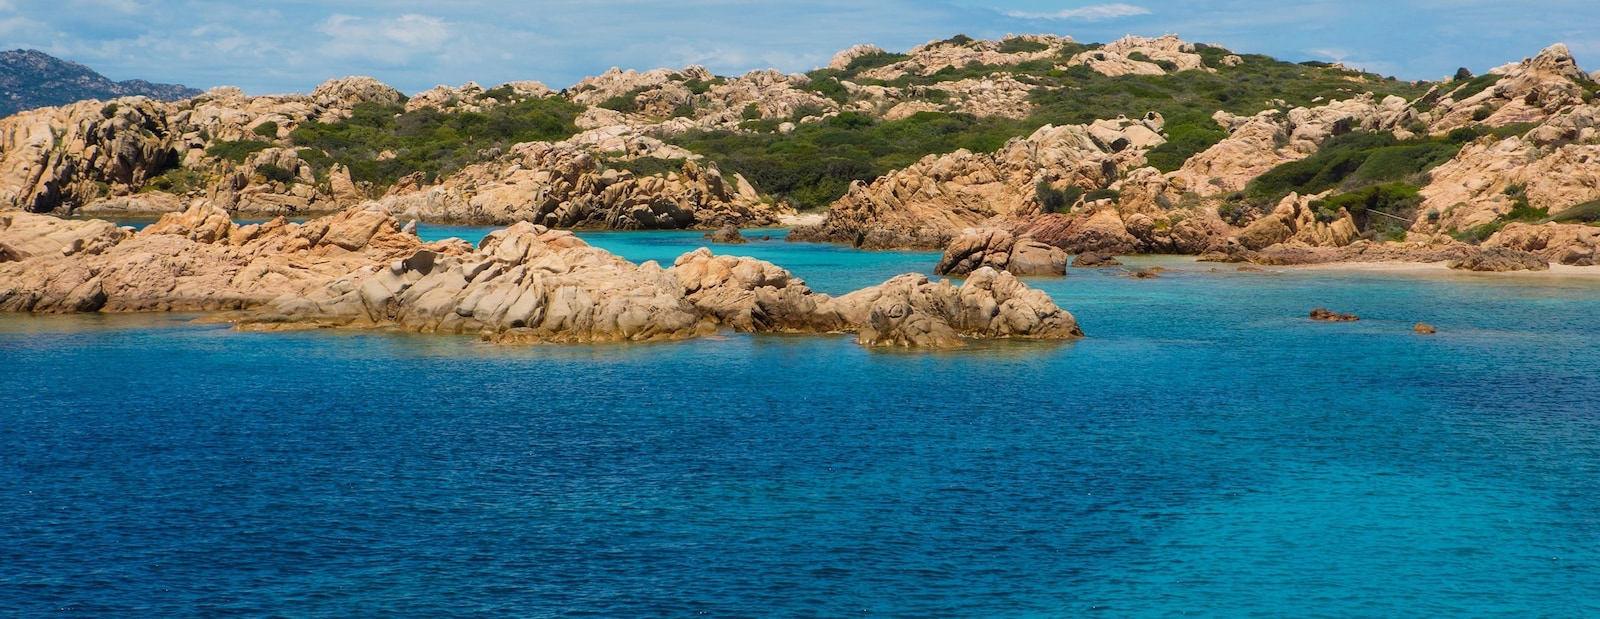 Vacation rentals in Sini, Sardinia